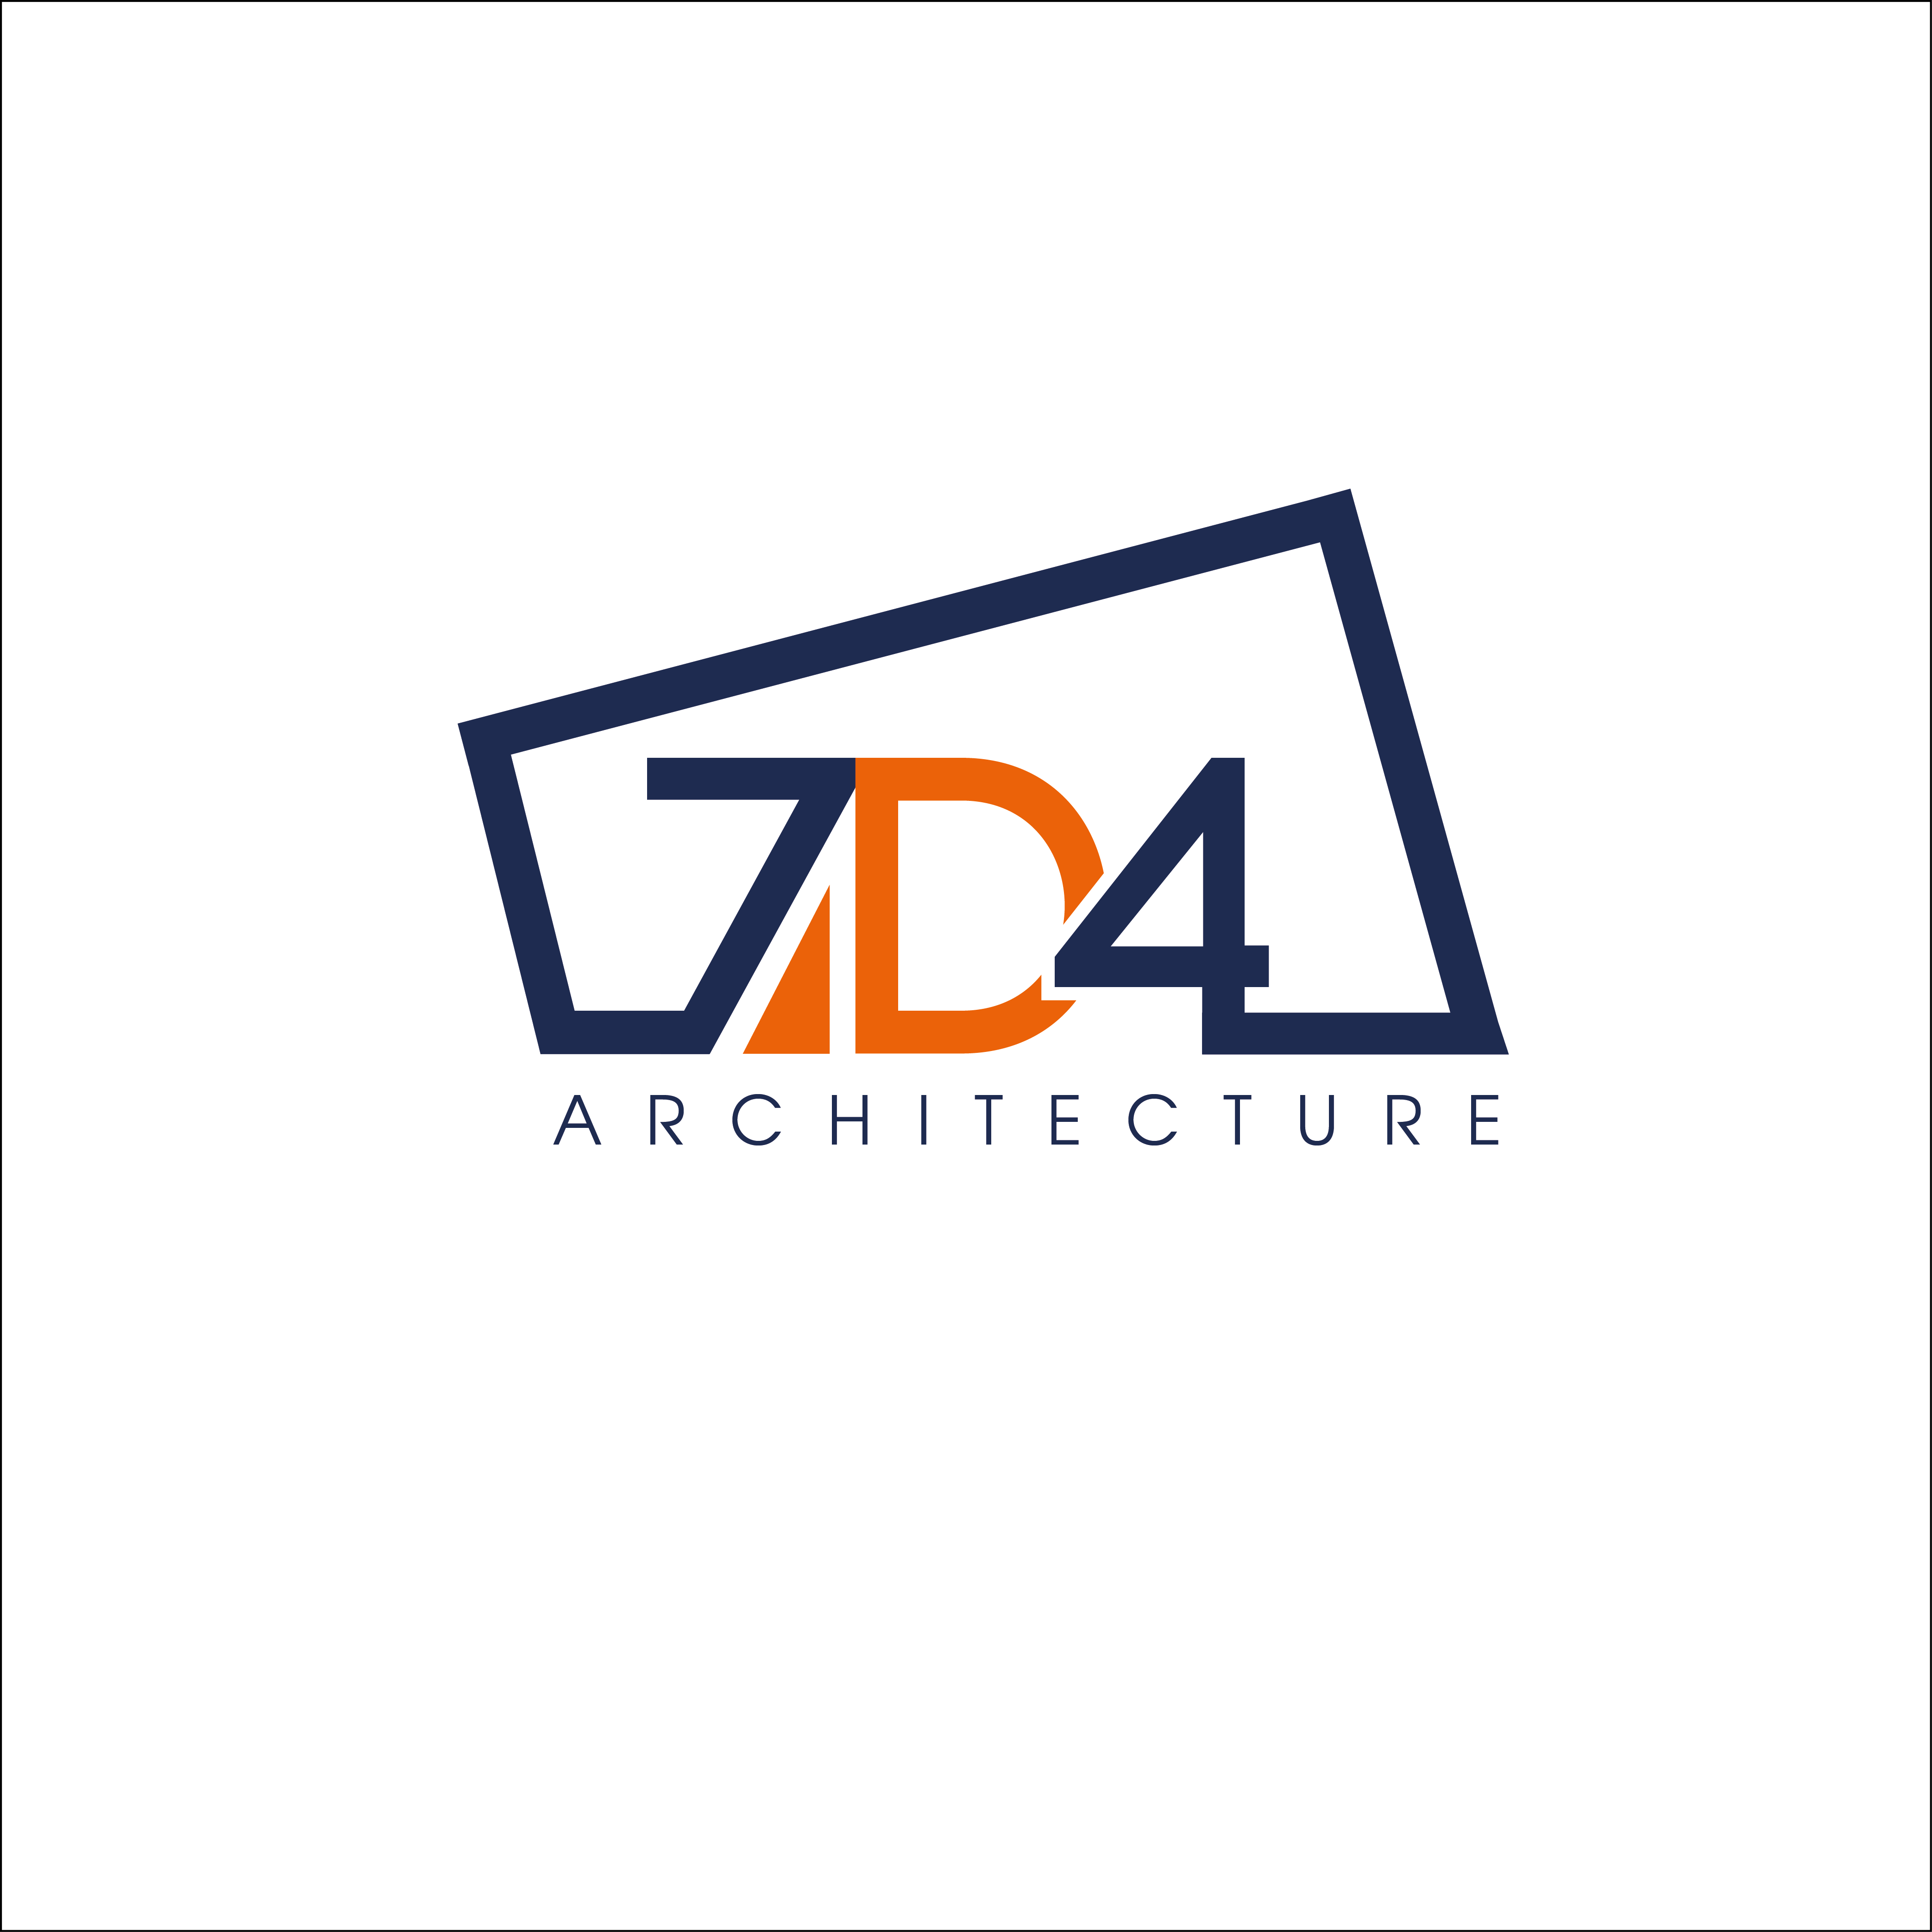 Architecture firm needs a logo update